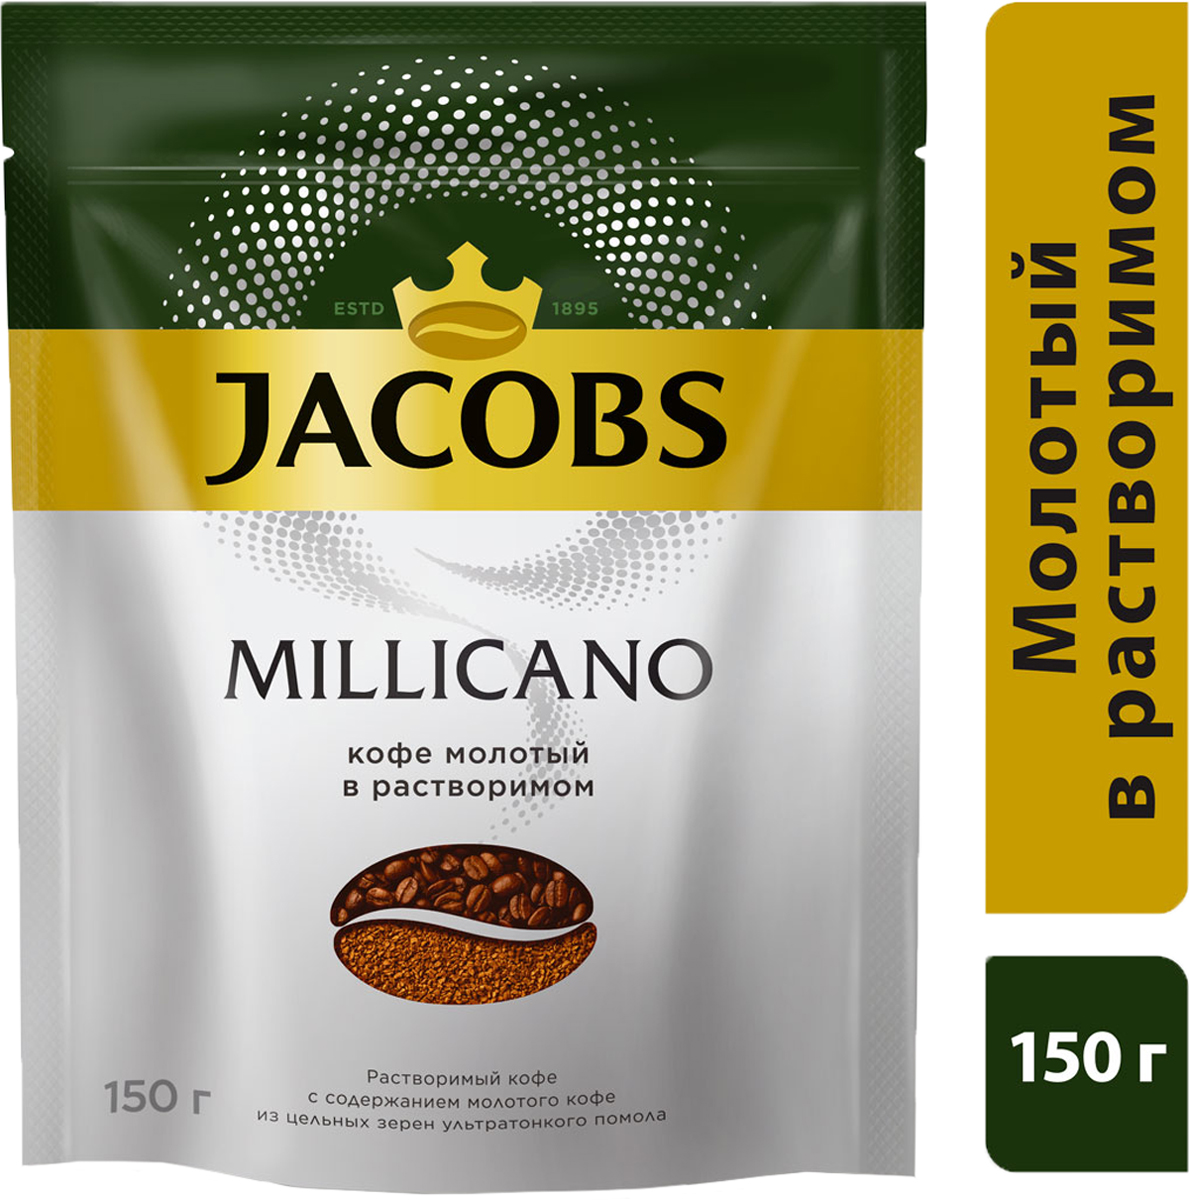 Jacobs Monarch Millicano кофе растворимый, 150 г (пакет) nikon 20x56 monarch 5